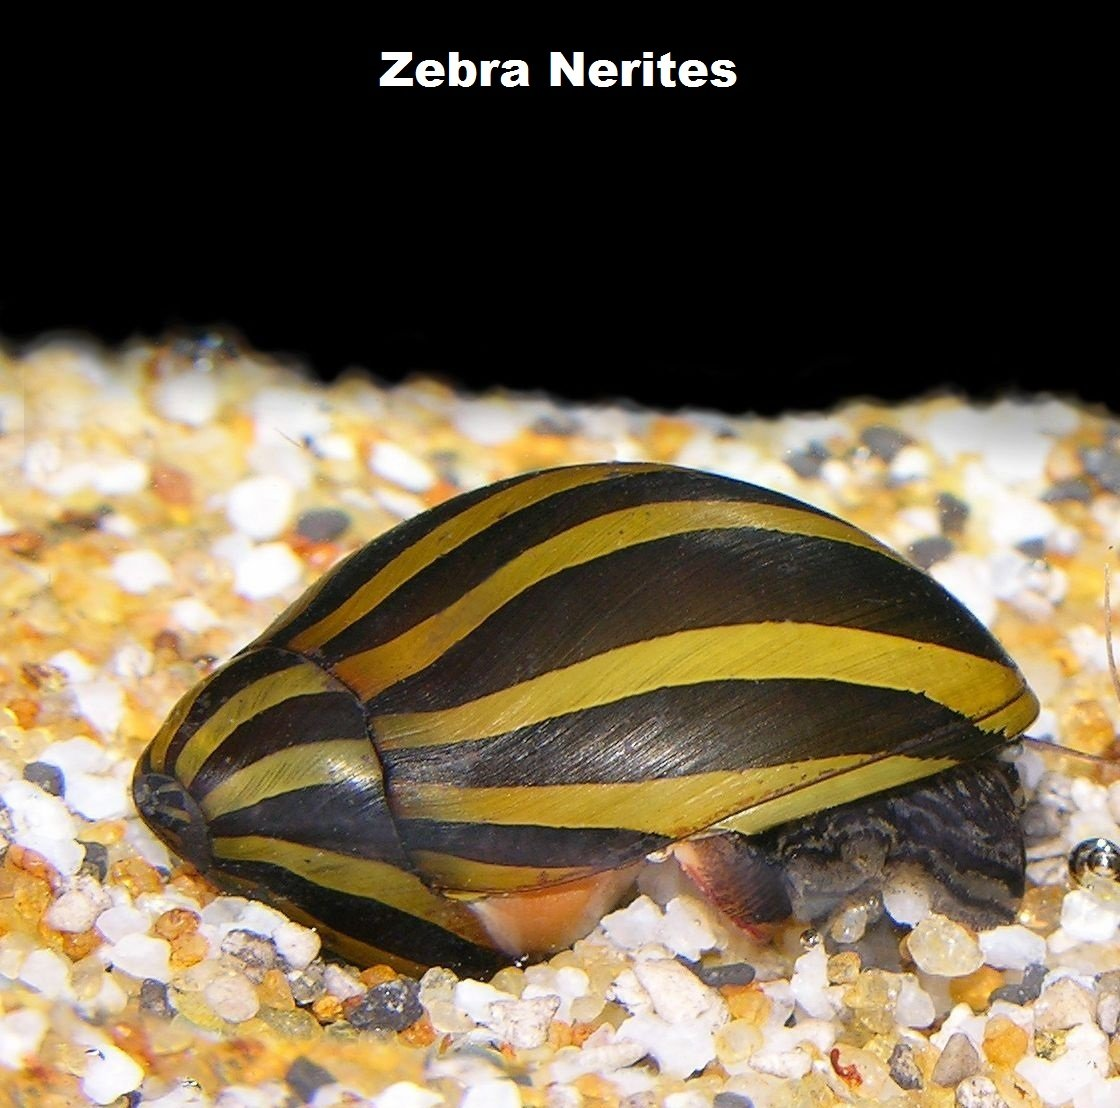 Live Freshwater Aquarium Fish - (12) Varied Nerite Snails - 12 Pack of Mixed Nerites(Zebra, Red Spotted, Horned) - by WorldwideTropicals - Populate Your Fish Tank!